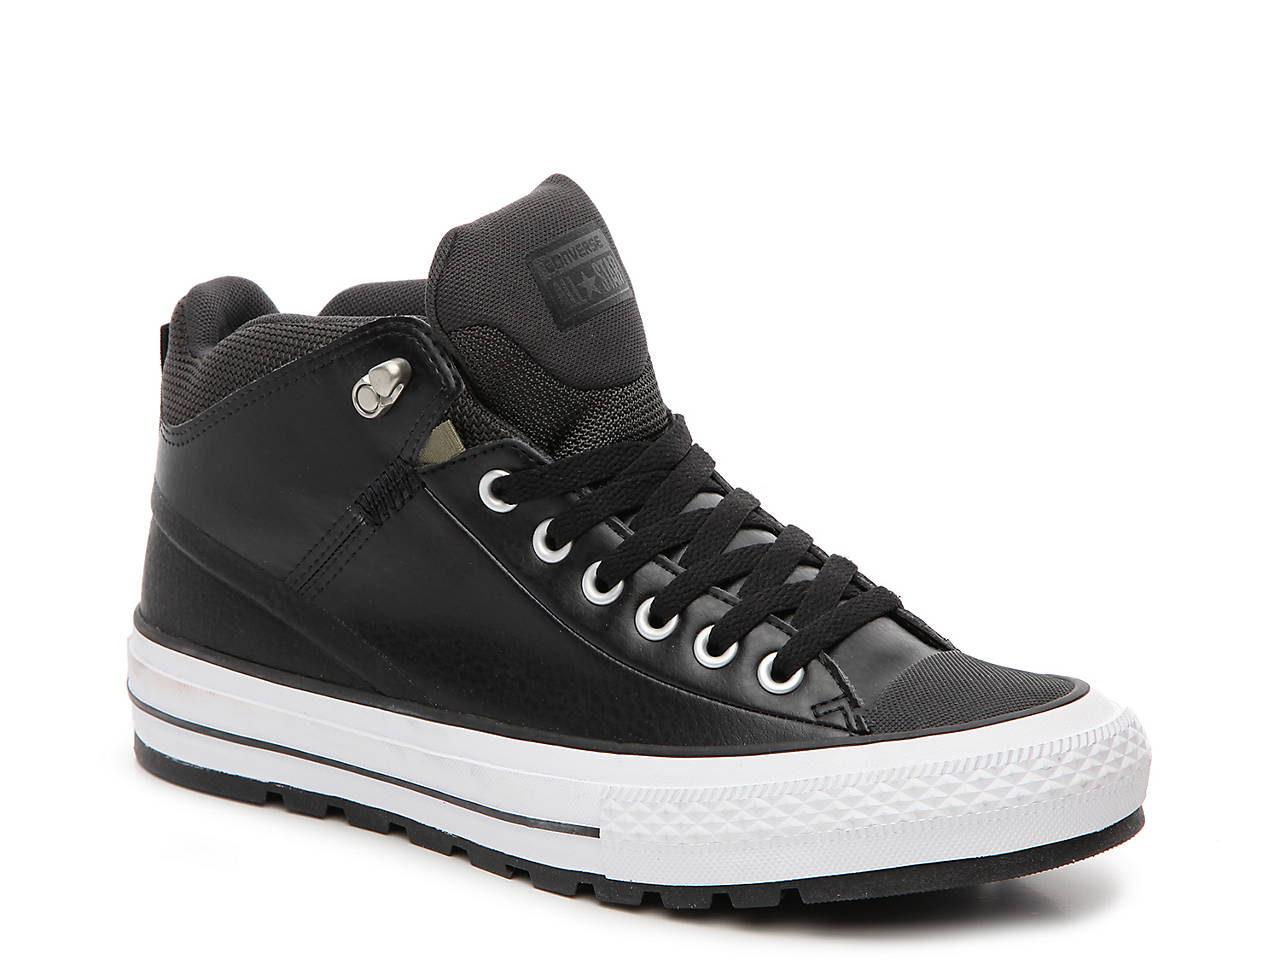 adb770ca9d Converse Chuck Taylor All Star Hi Street High-Top Sneaker Boot ...